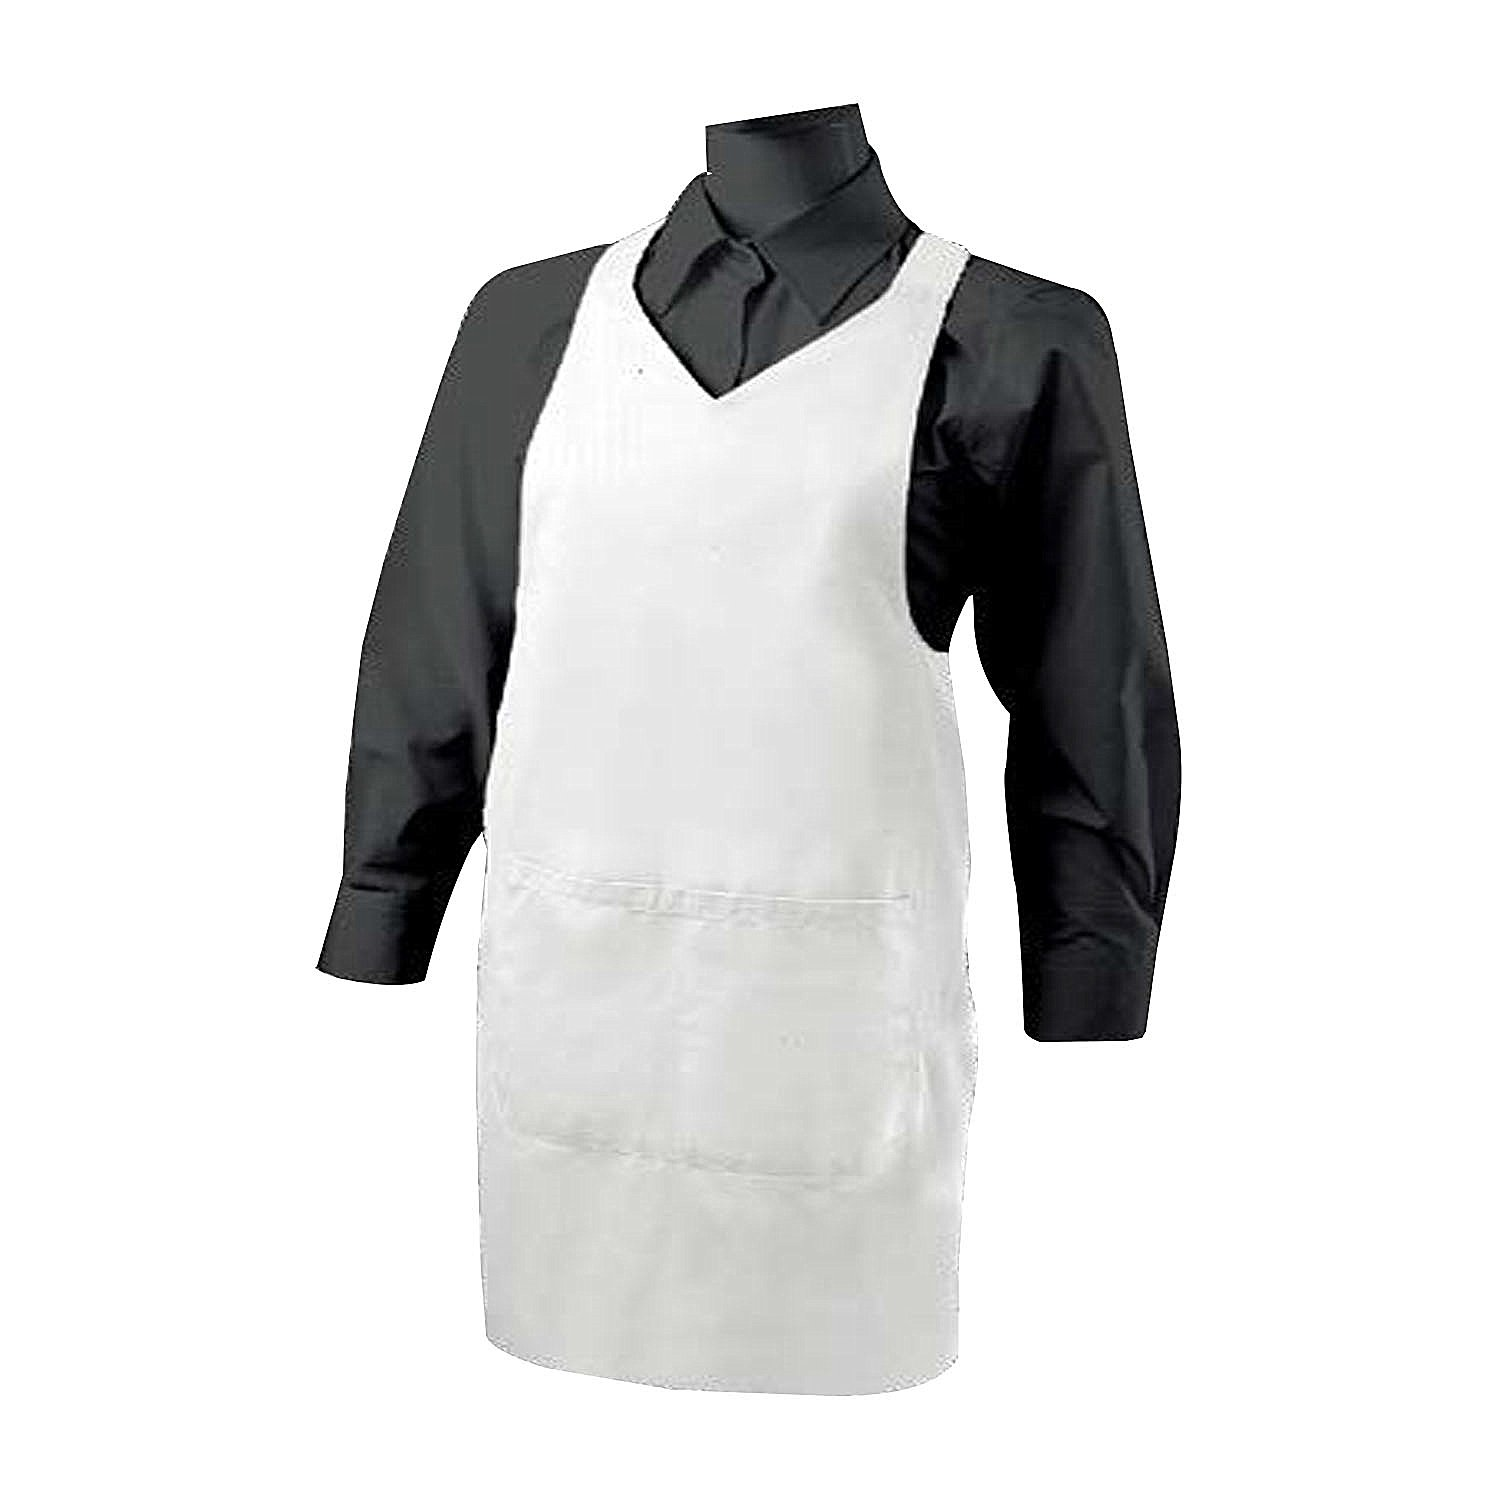 MISEMIYA Cleaning Apron with Pocket 85  mm * 70  mm Uniform Work Clinica Hospital Cleaning Veterinary Health hostelerí a- Ref. 8601 burgundy